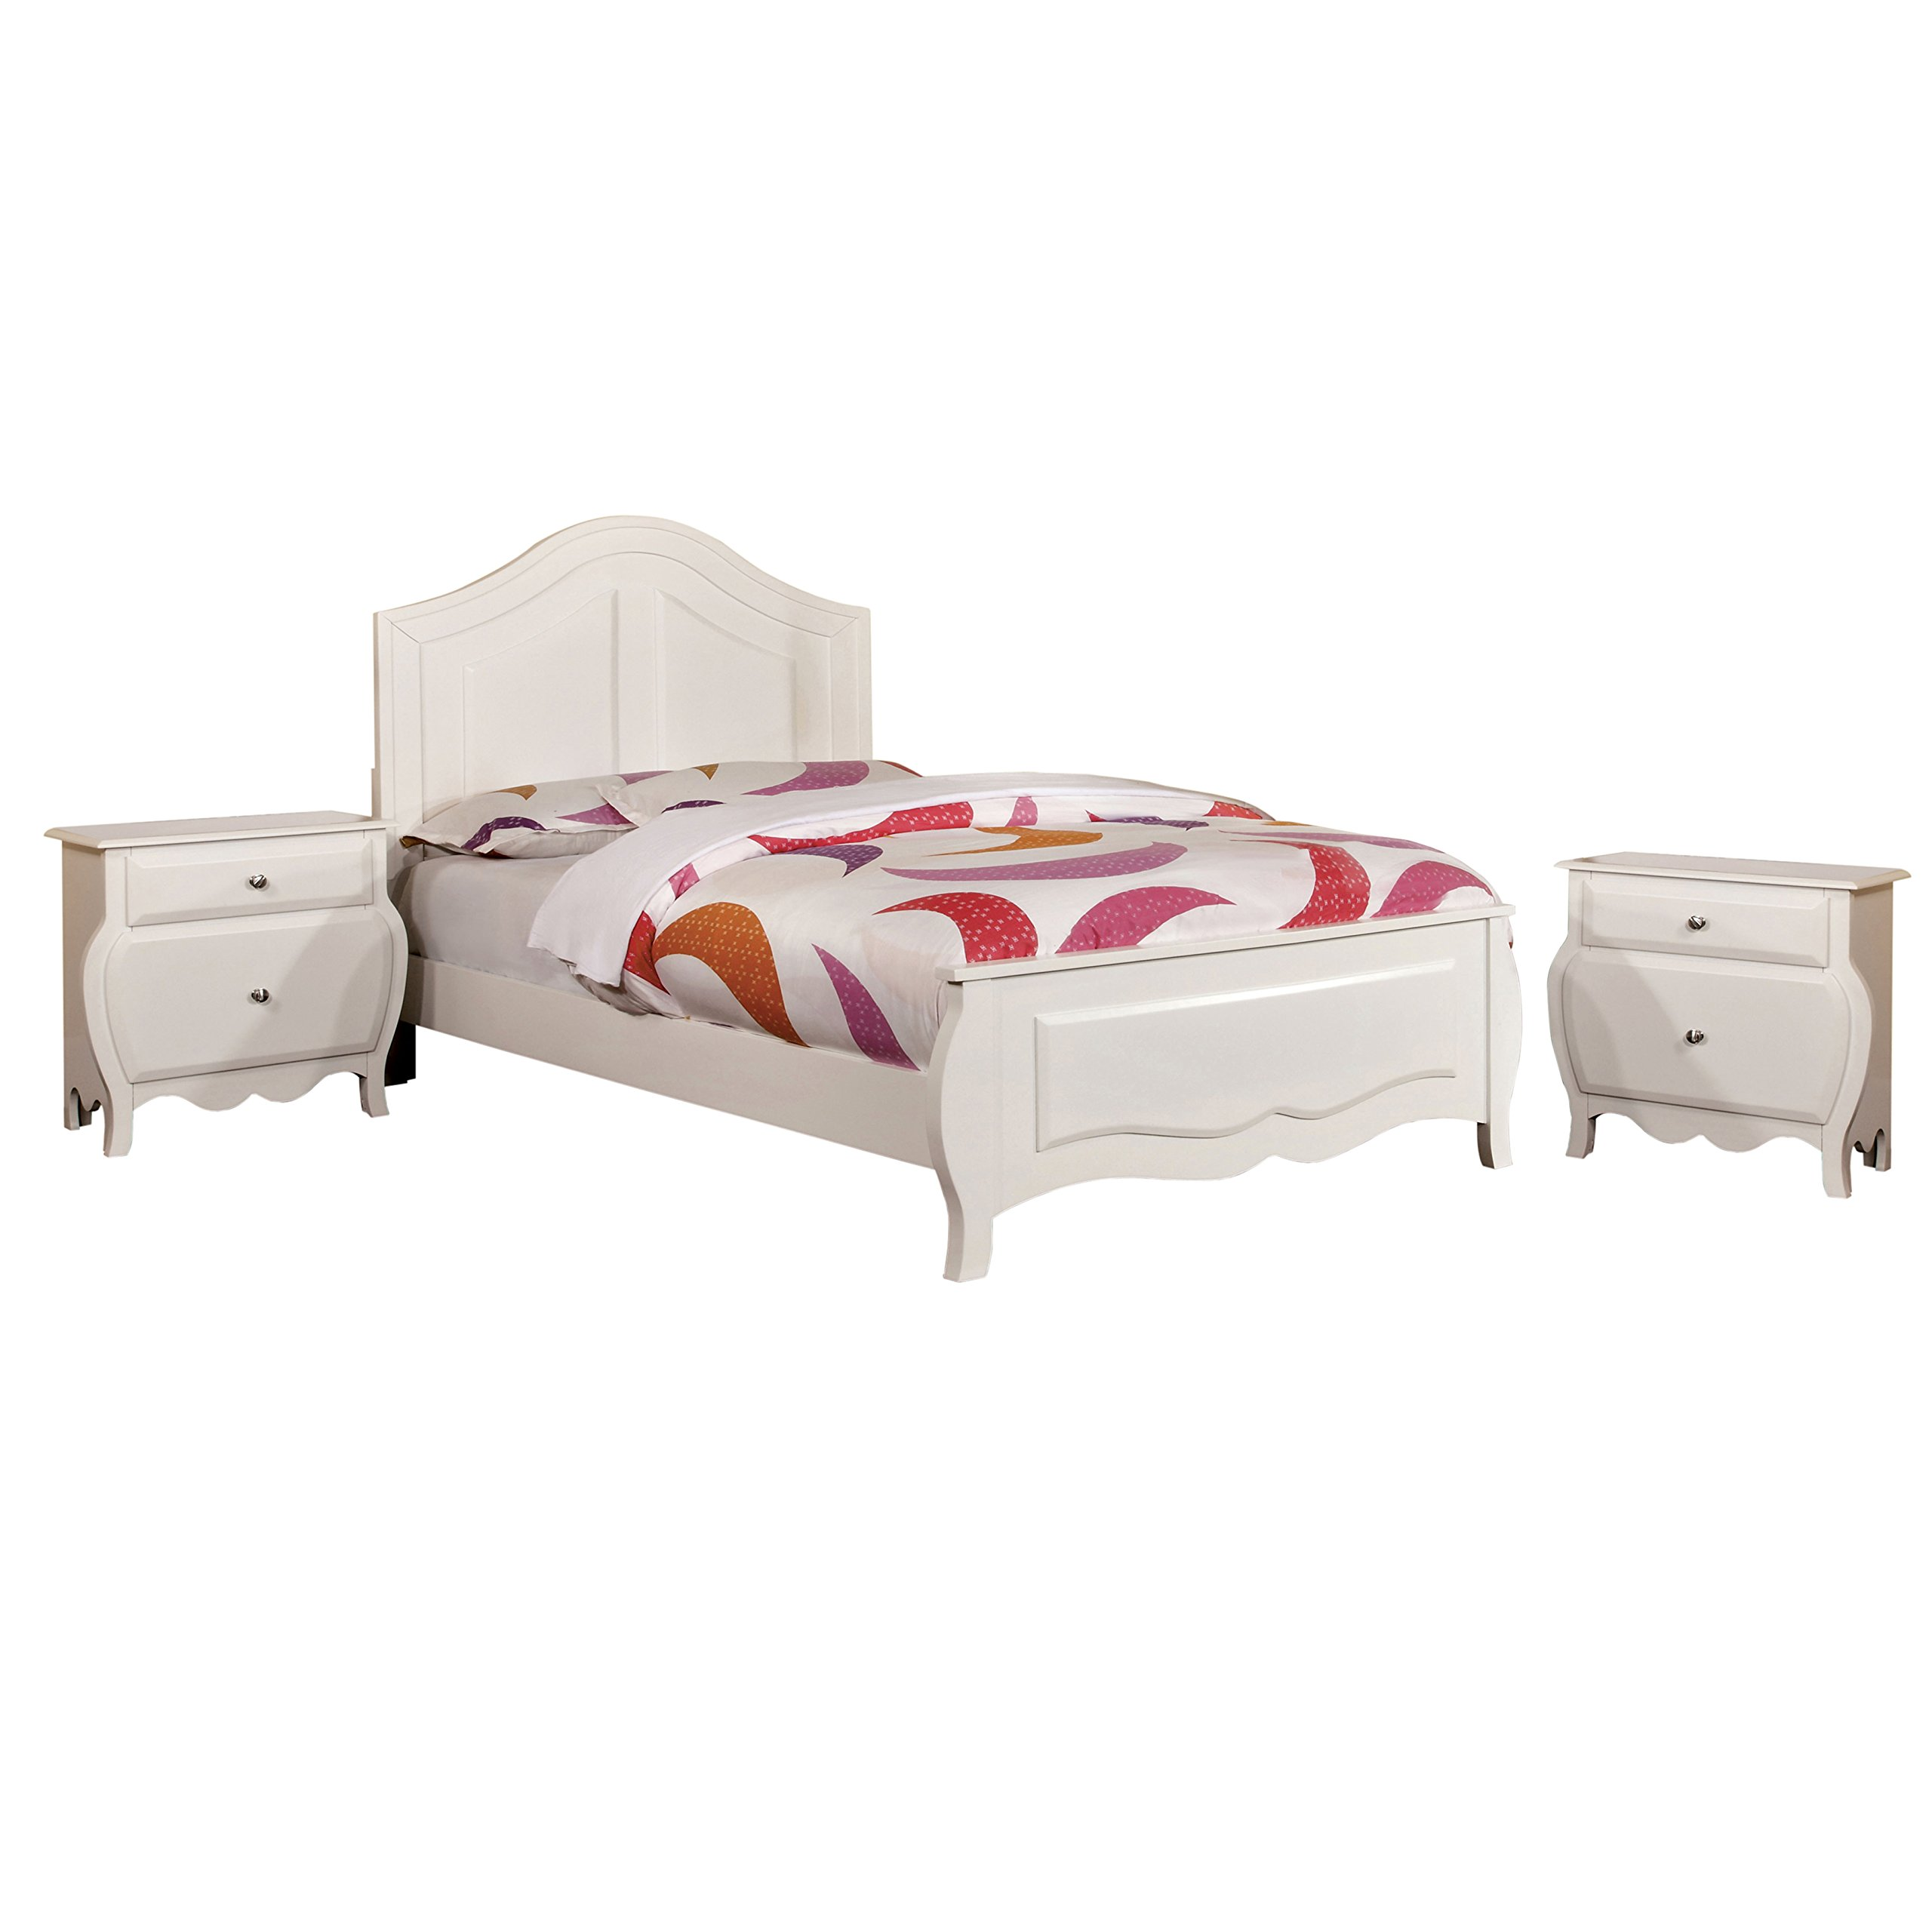 HOMES: Inside + Out 3 Piece ioHOMES Lionel Youth Bedroom Set with Nightstands, Full, White